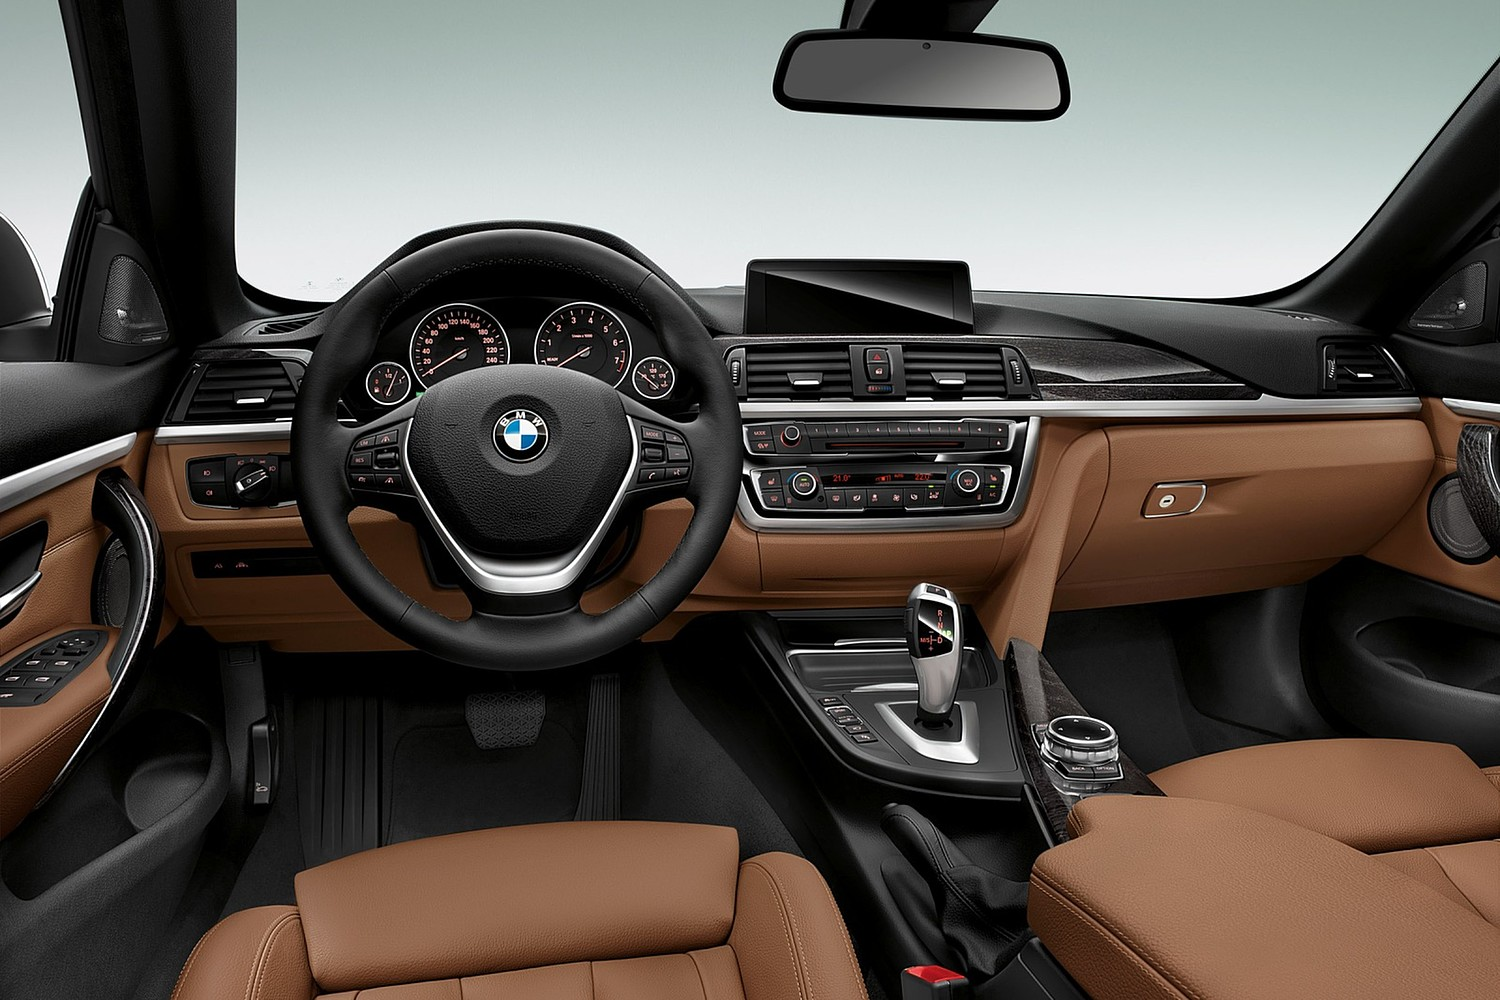 2017 BMW 4 Series 430i SULEV Convertible Dashboard. Luxury Line Package Shown.